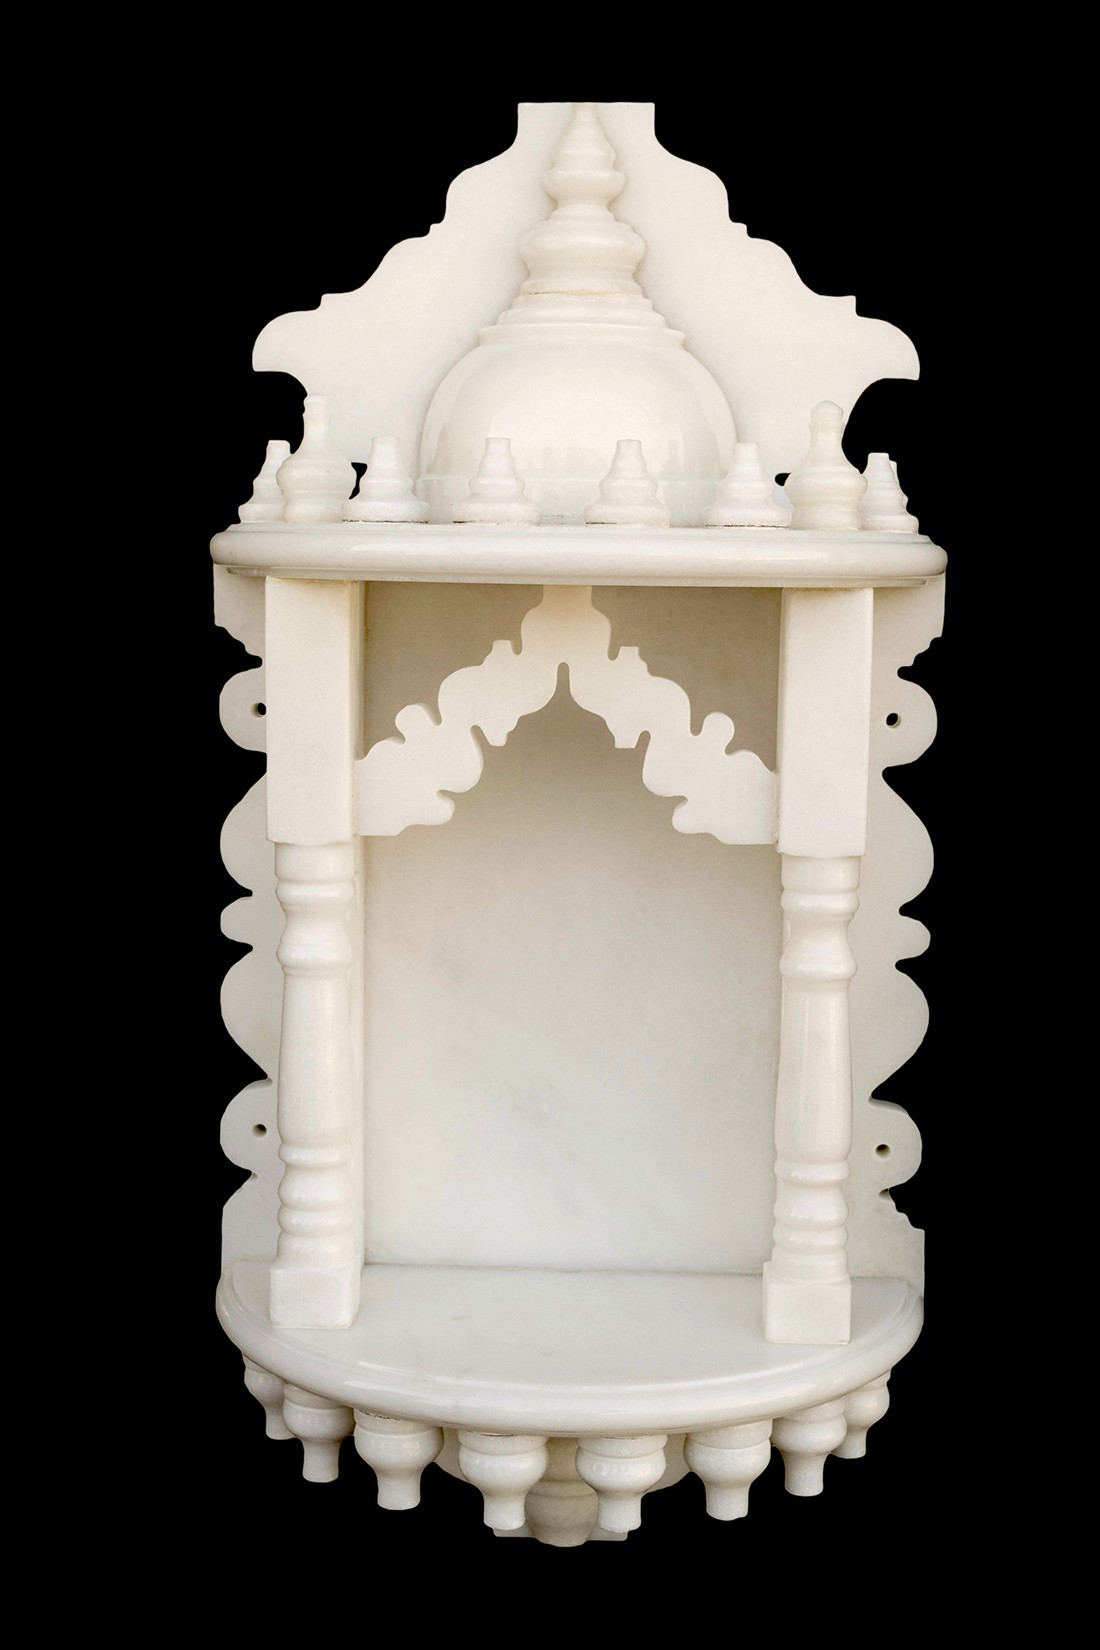 White Marble Home Temple Pooja Mandir small size 18 inches